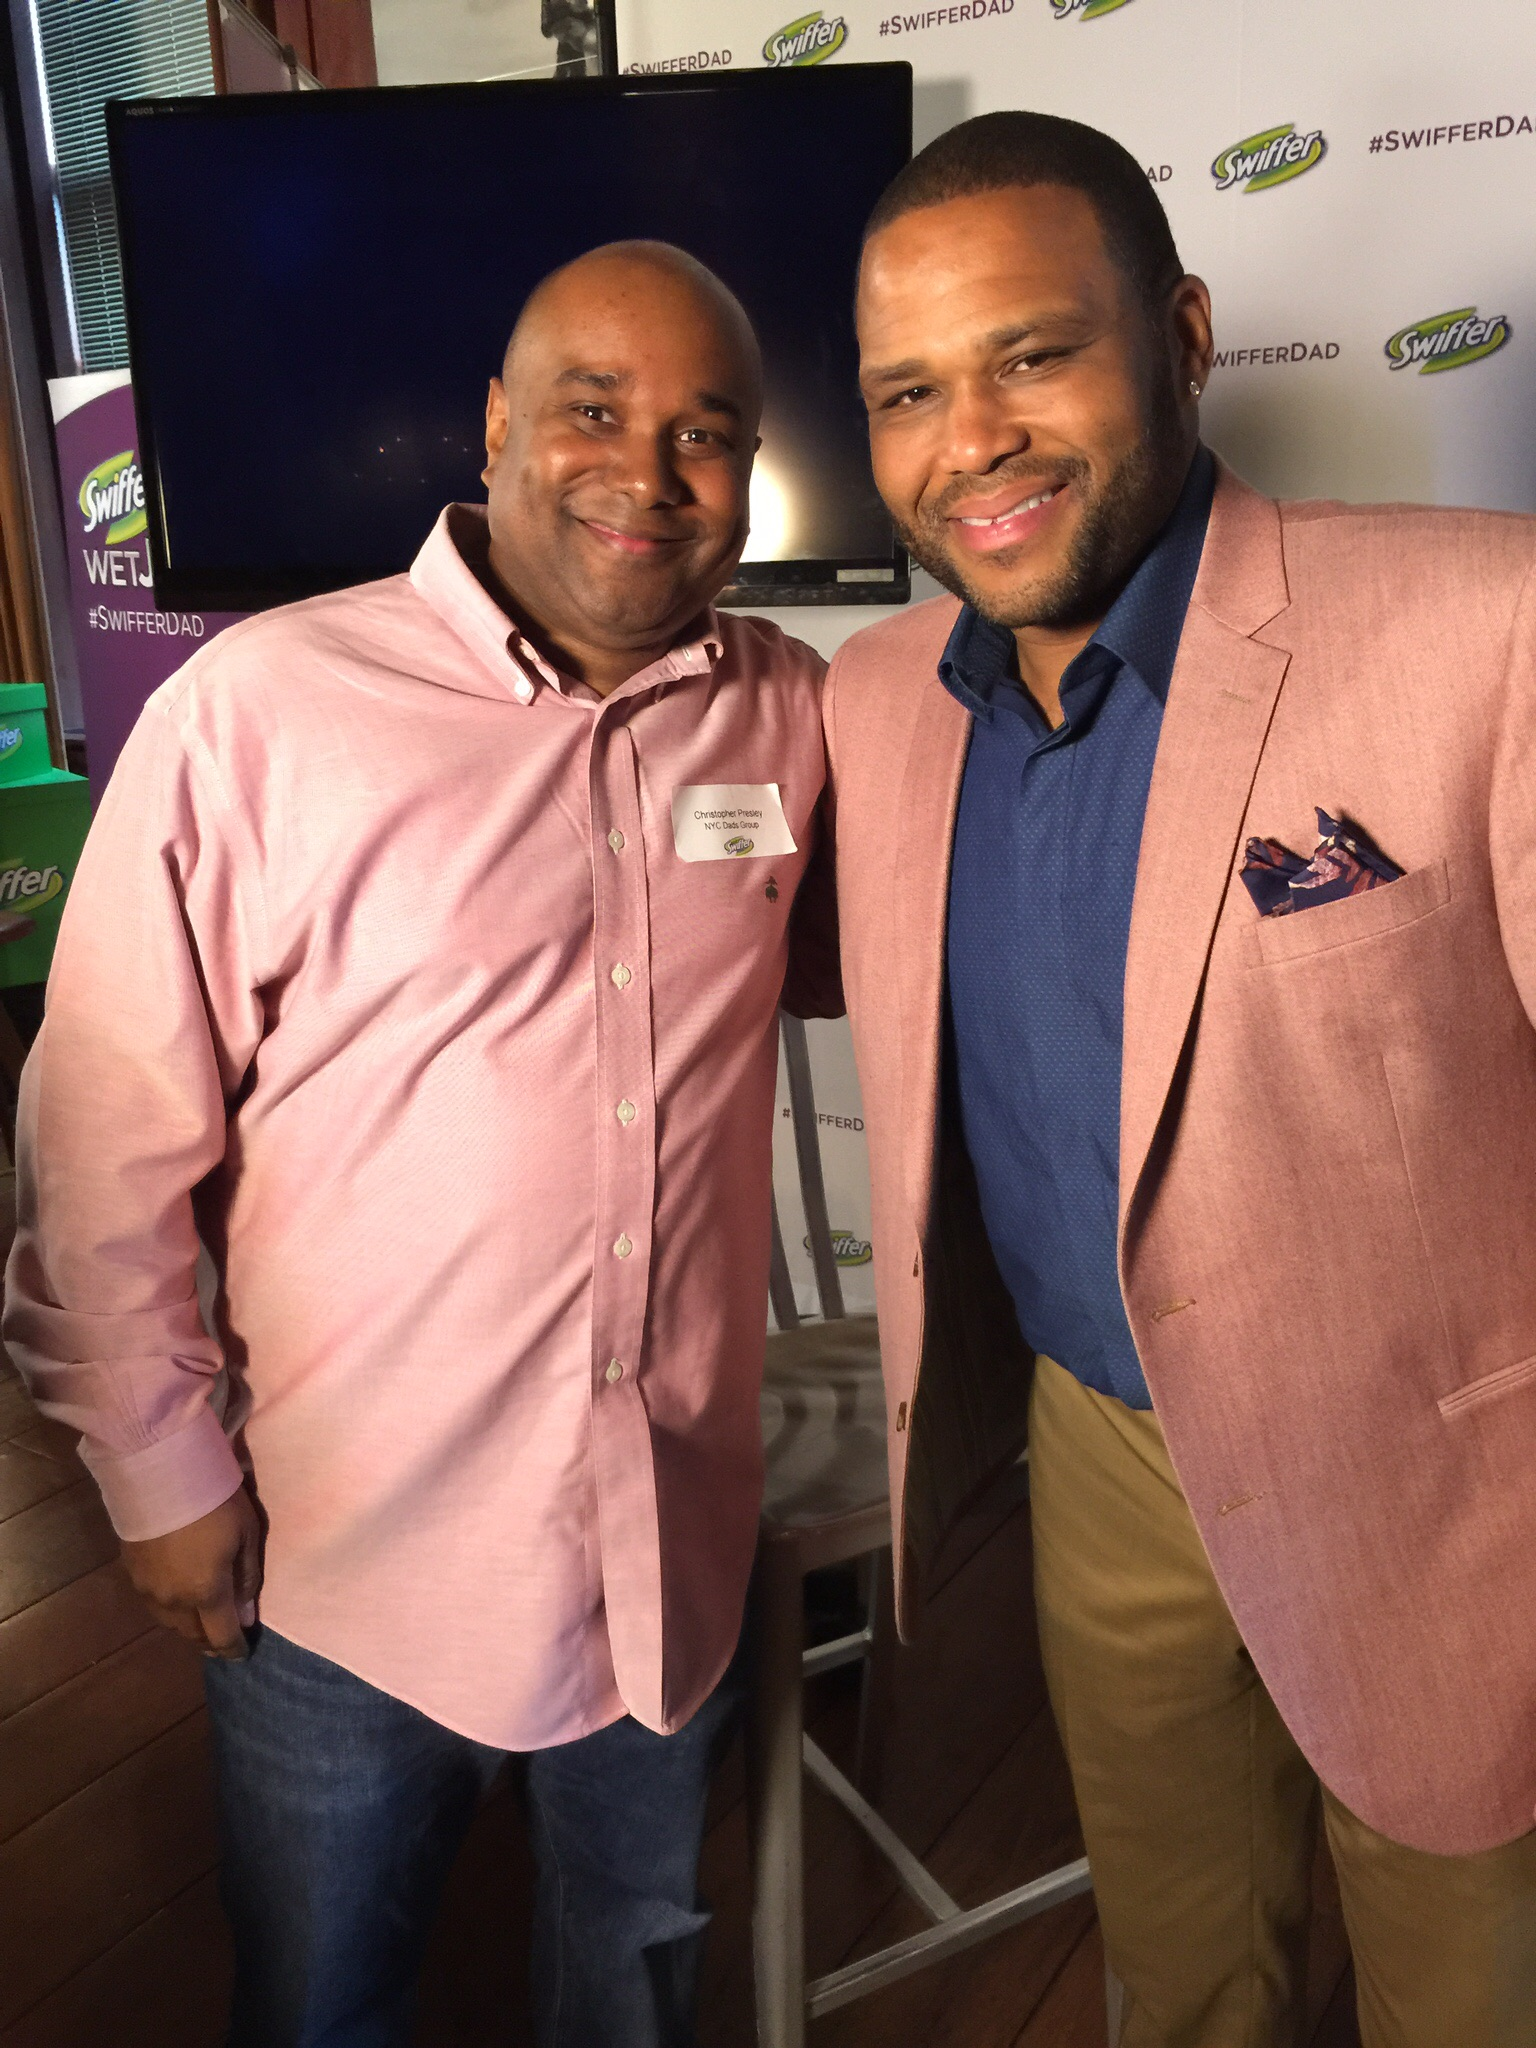 I met Anthony Anderson, who is the creative director of the #SwifferDad campaign at a Swiffer event.